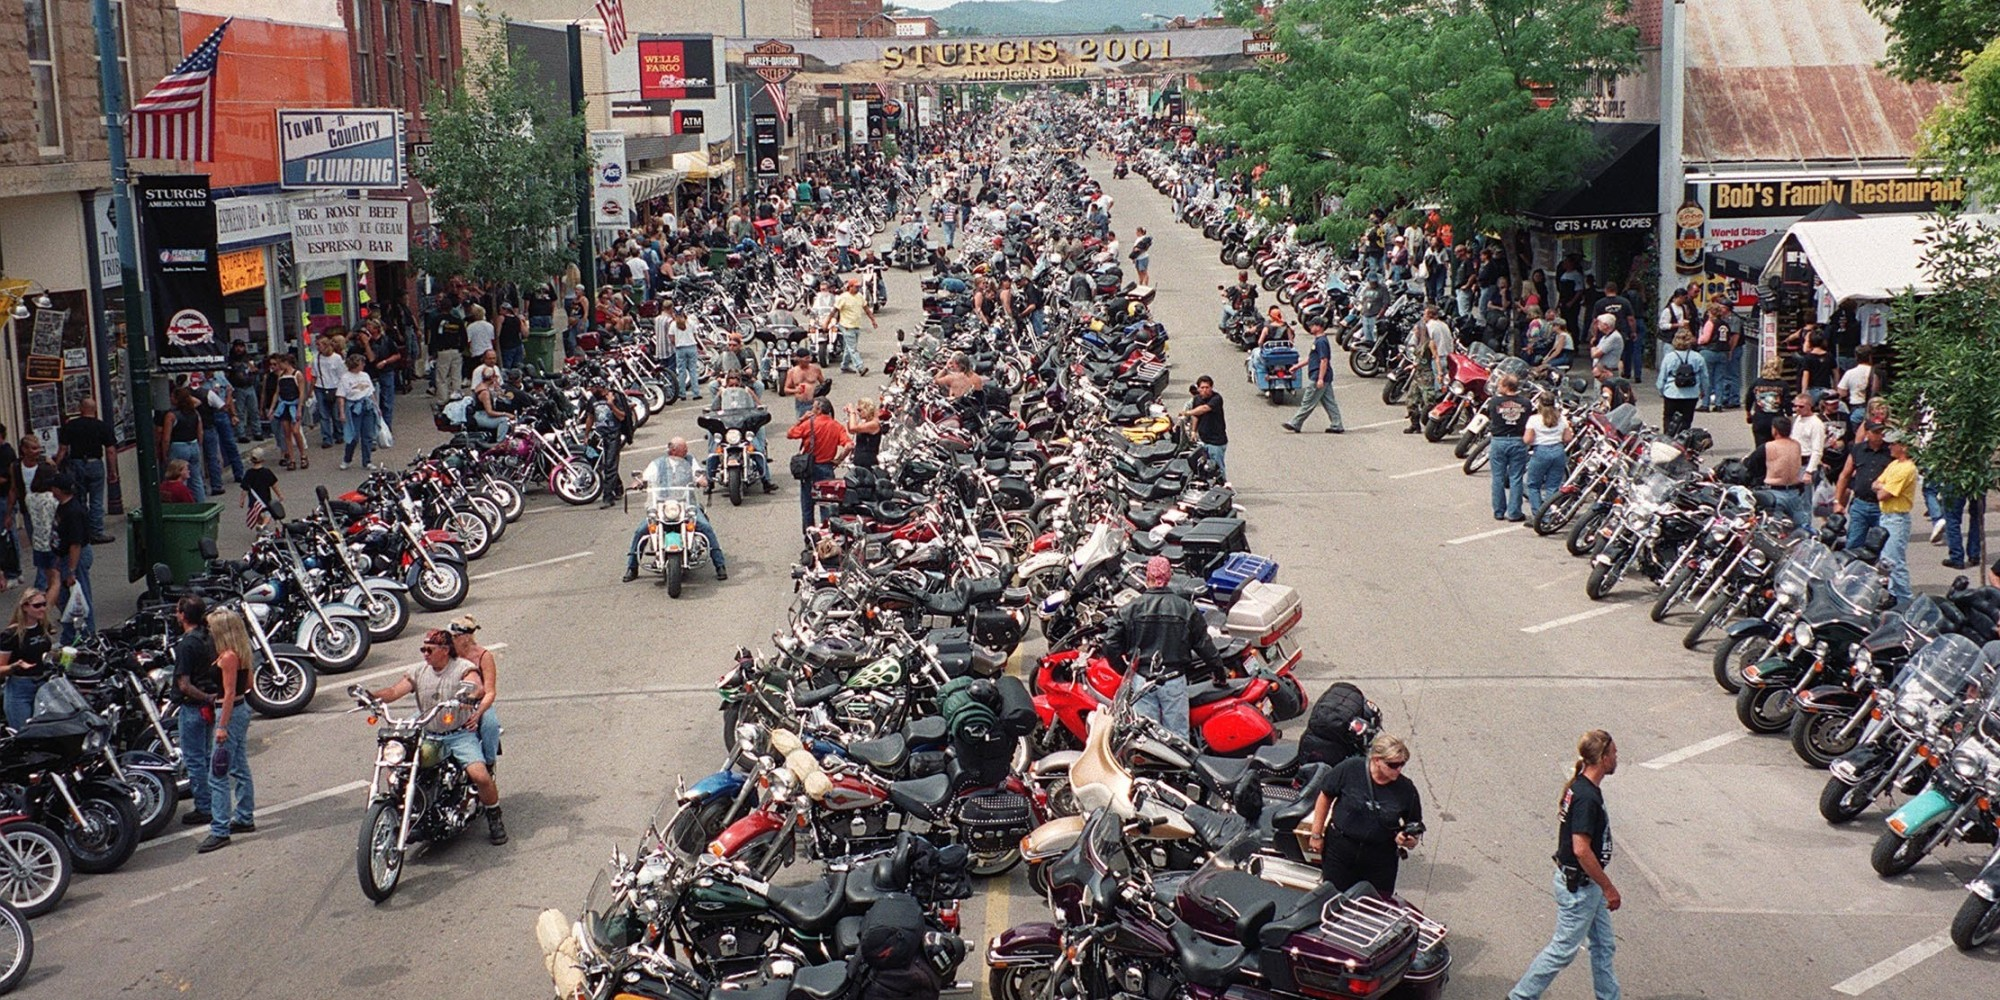 Macabre Betting Pool On Sturgis Motorcycle Rally Deaths ...